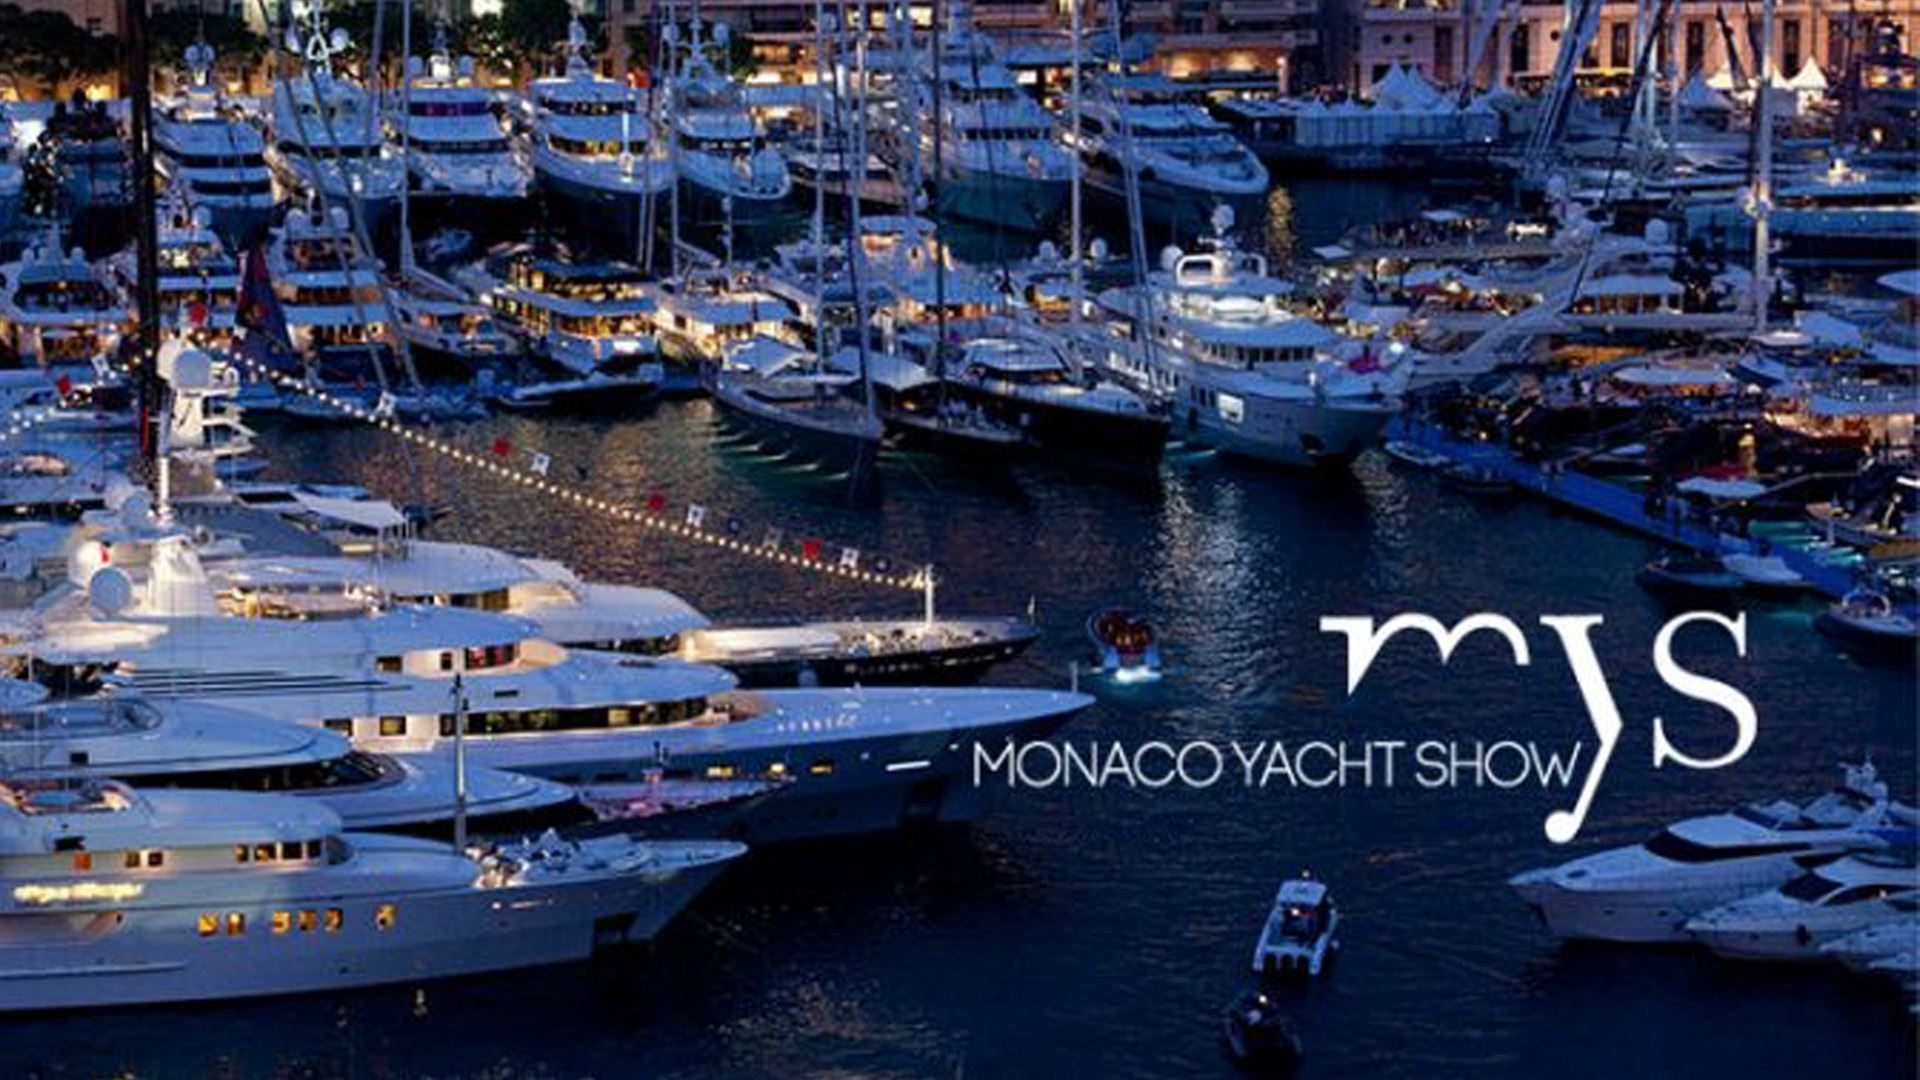 BCE is at Monaco Yacht Show 2019